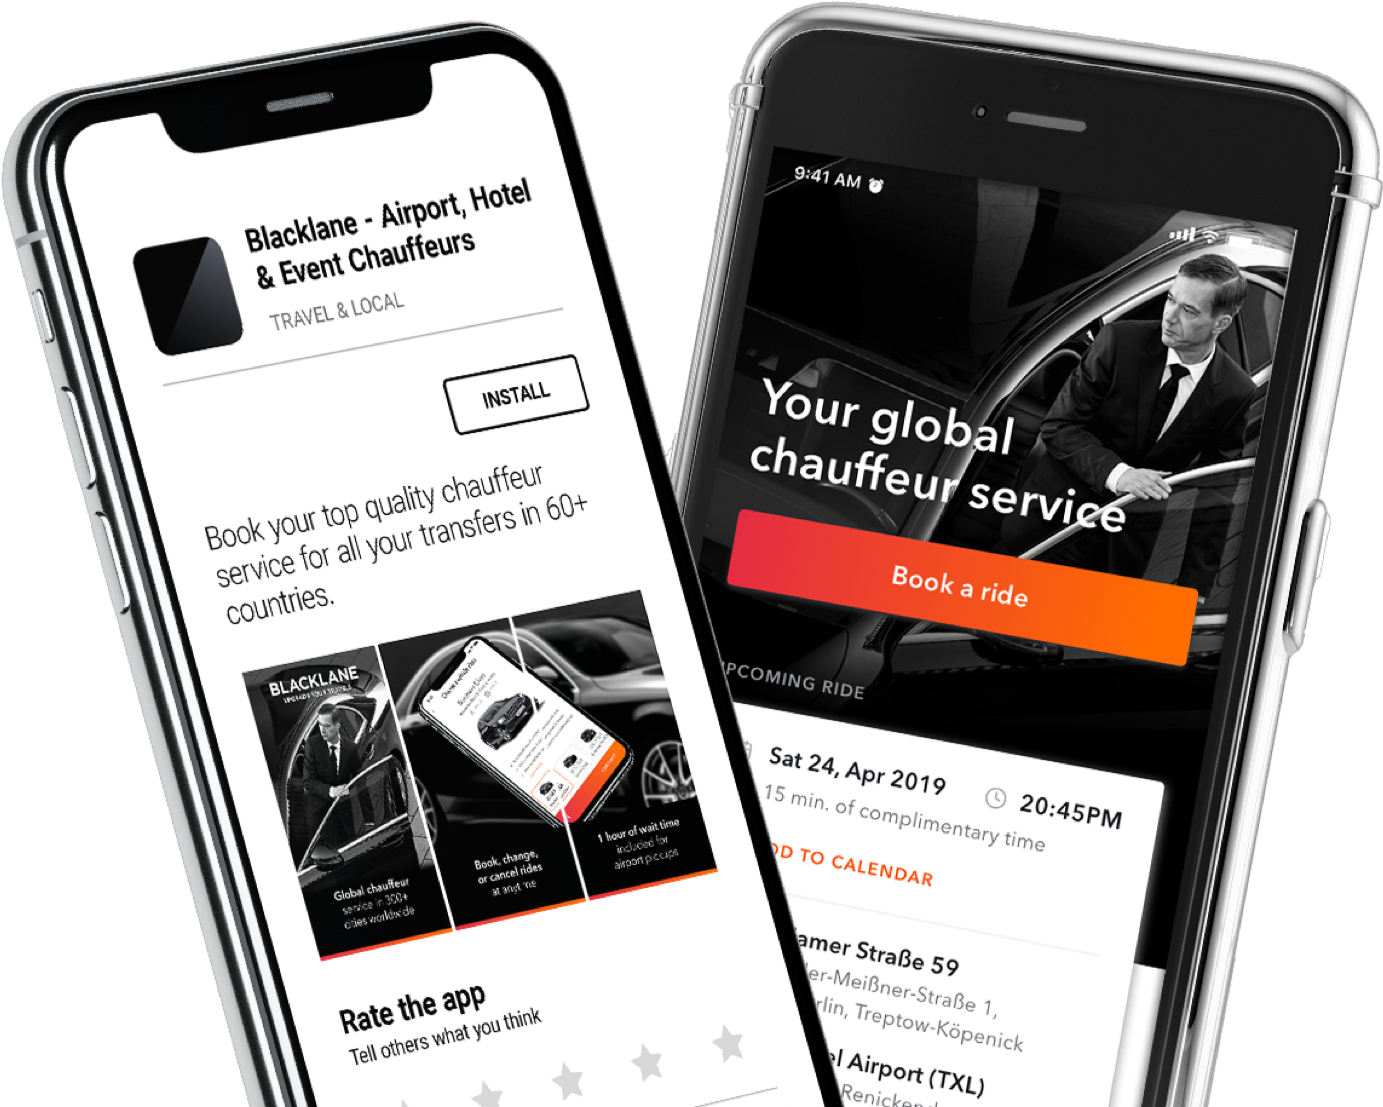 Blacklane | Upgrade your travels